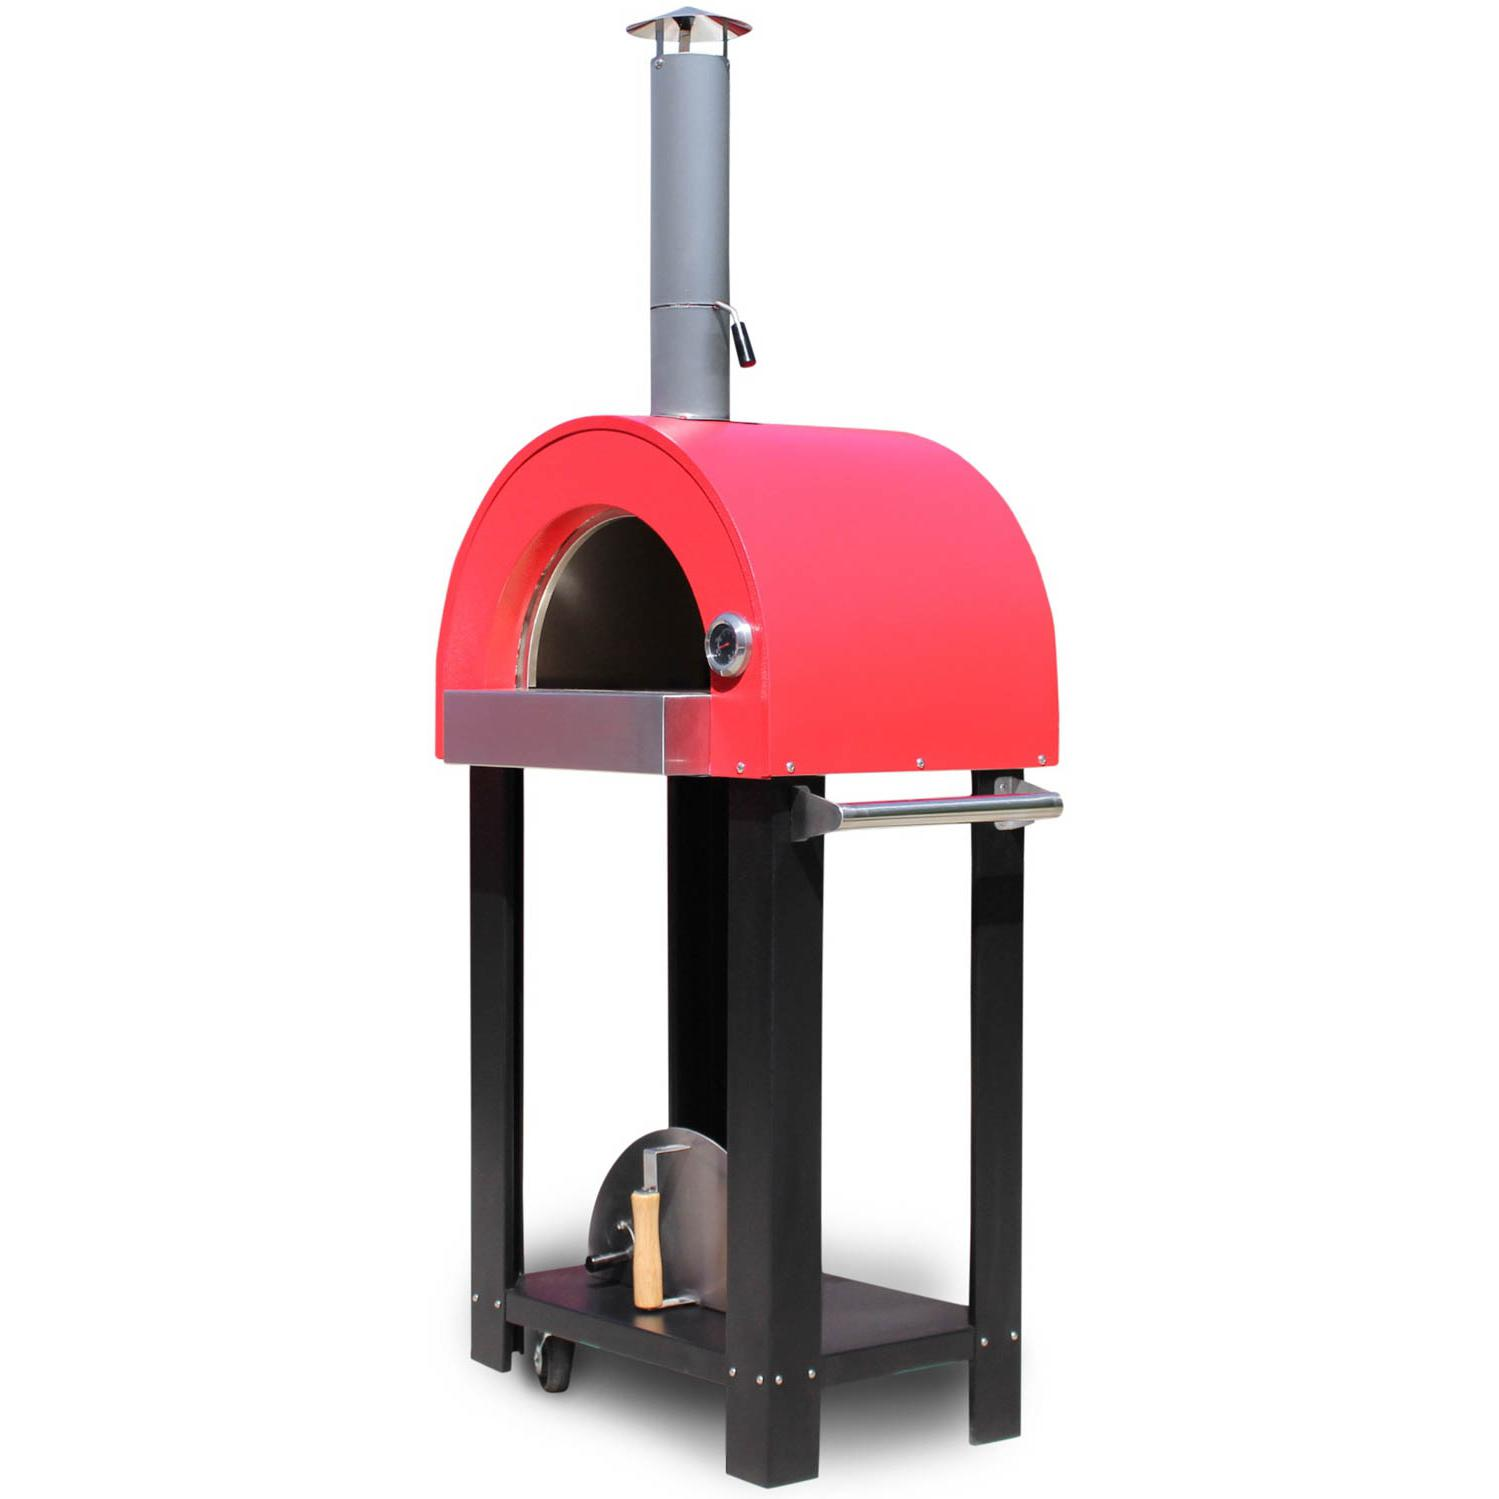 Bella Nano C22 (22 Inch) Wood Fired Outdoor Pizza Oven On Cart